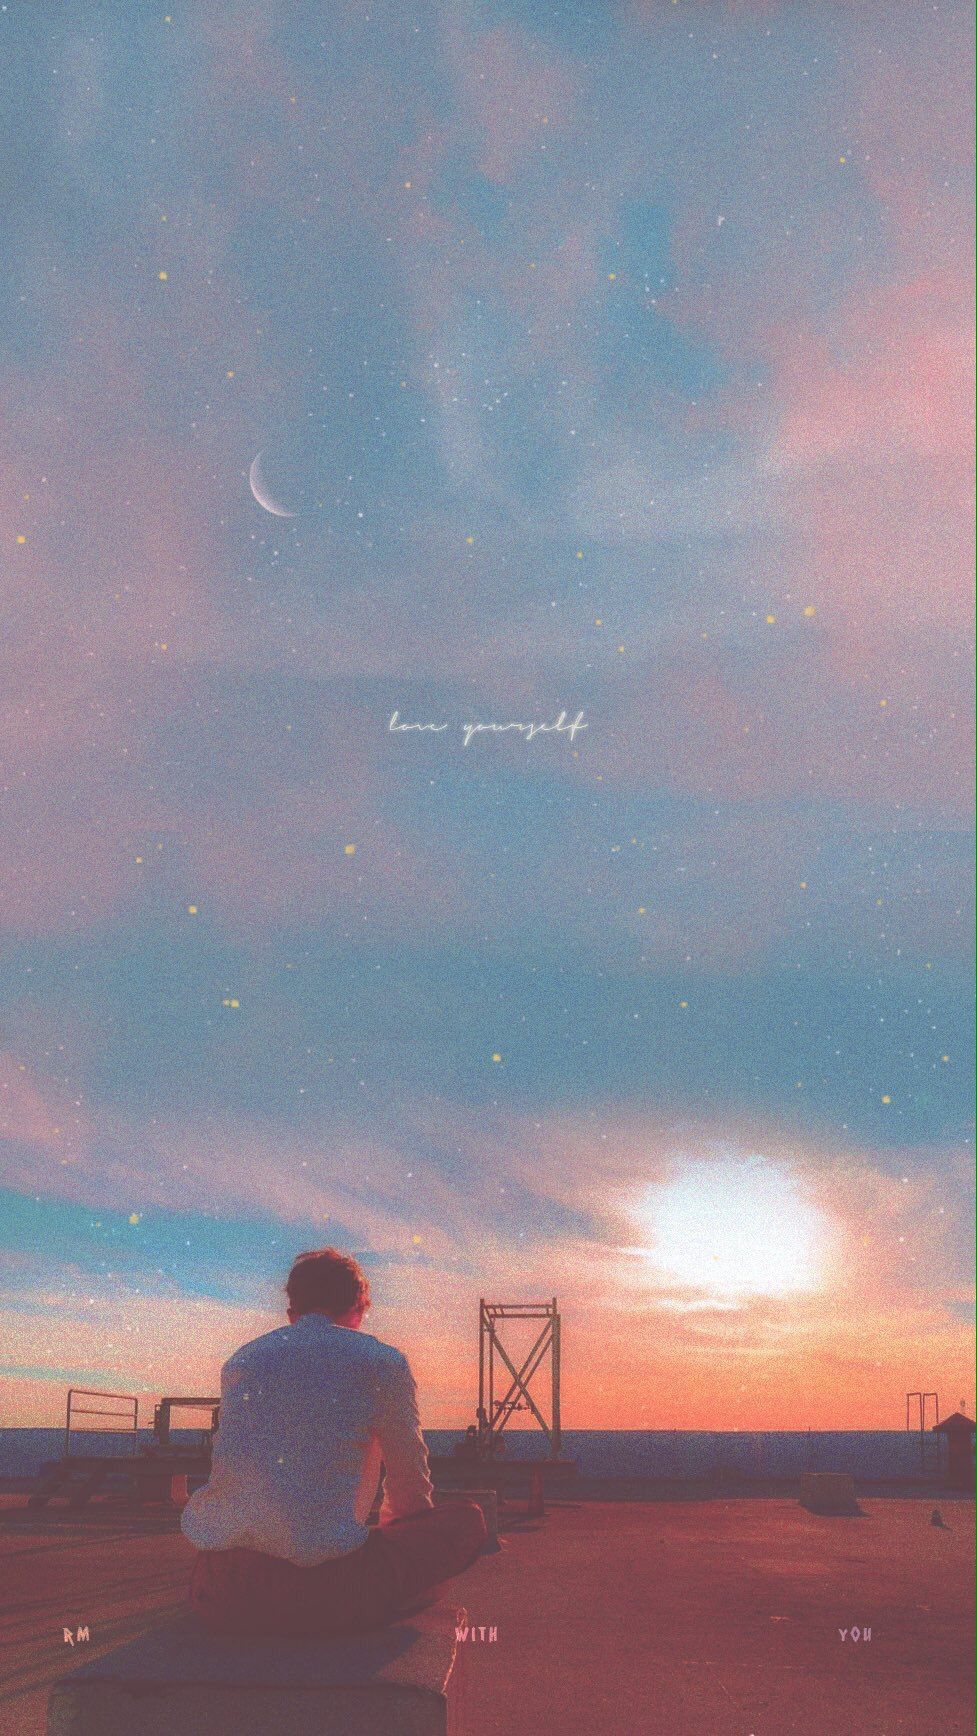 Love Yourself Bts Bts Aesthetic Wallpaper For Phone Bts Wallpaper Aesthetic Wallpapers